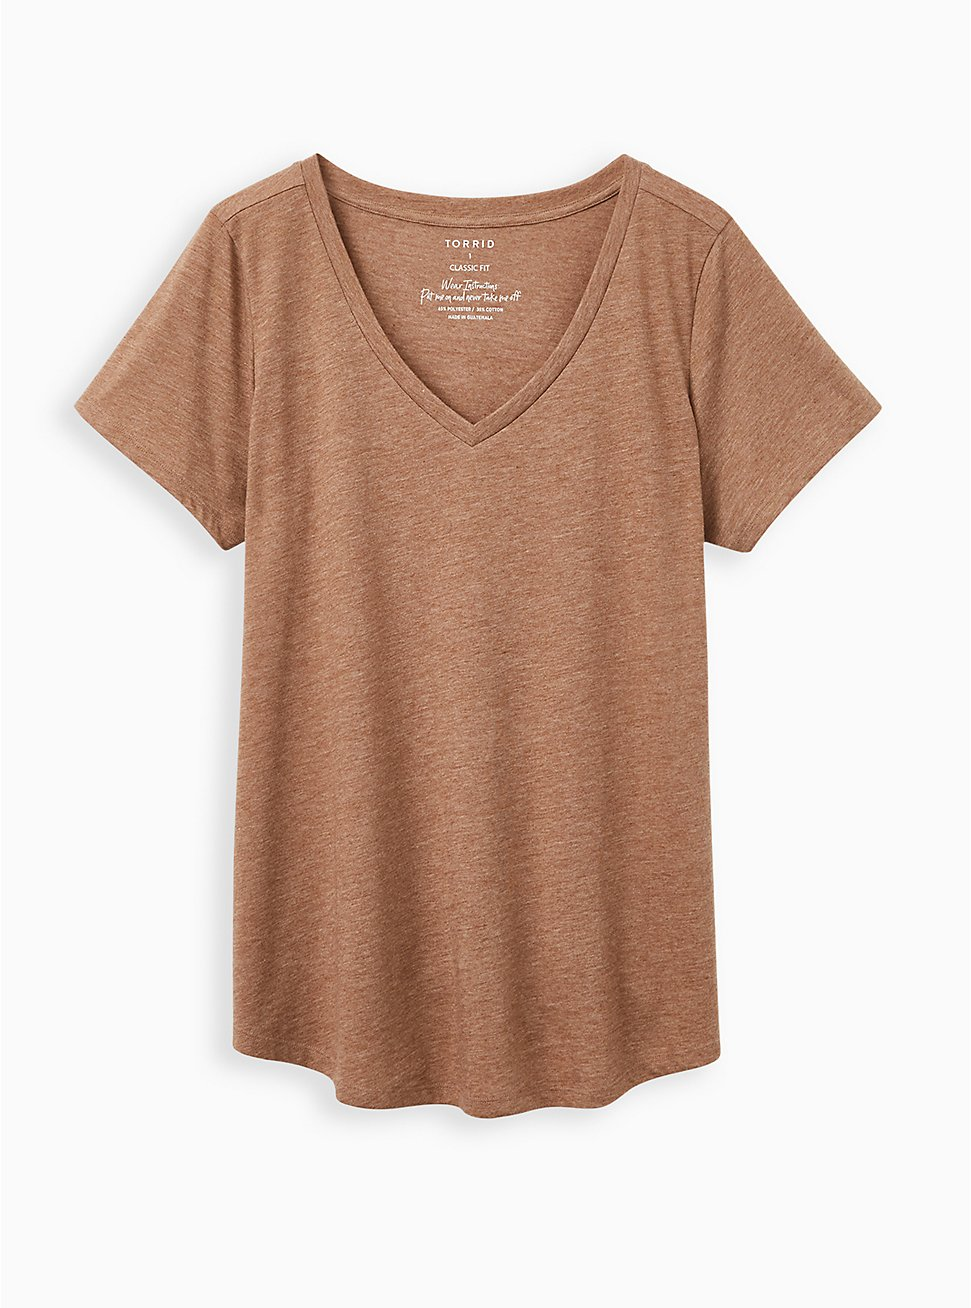 Girlfriend Tee - Signature Jersey Brown, BROWN, hi-res